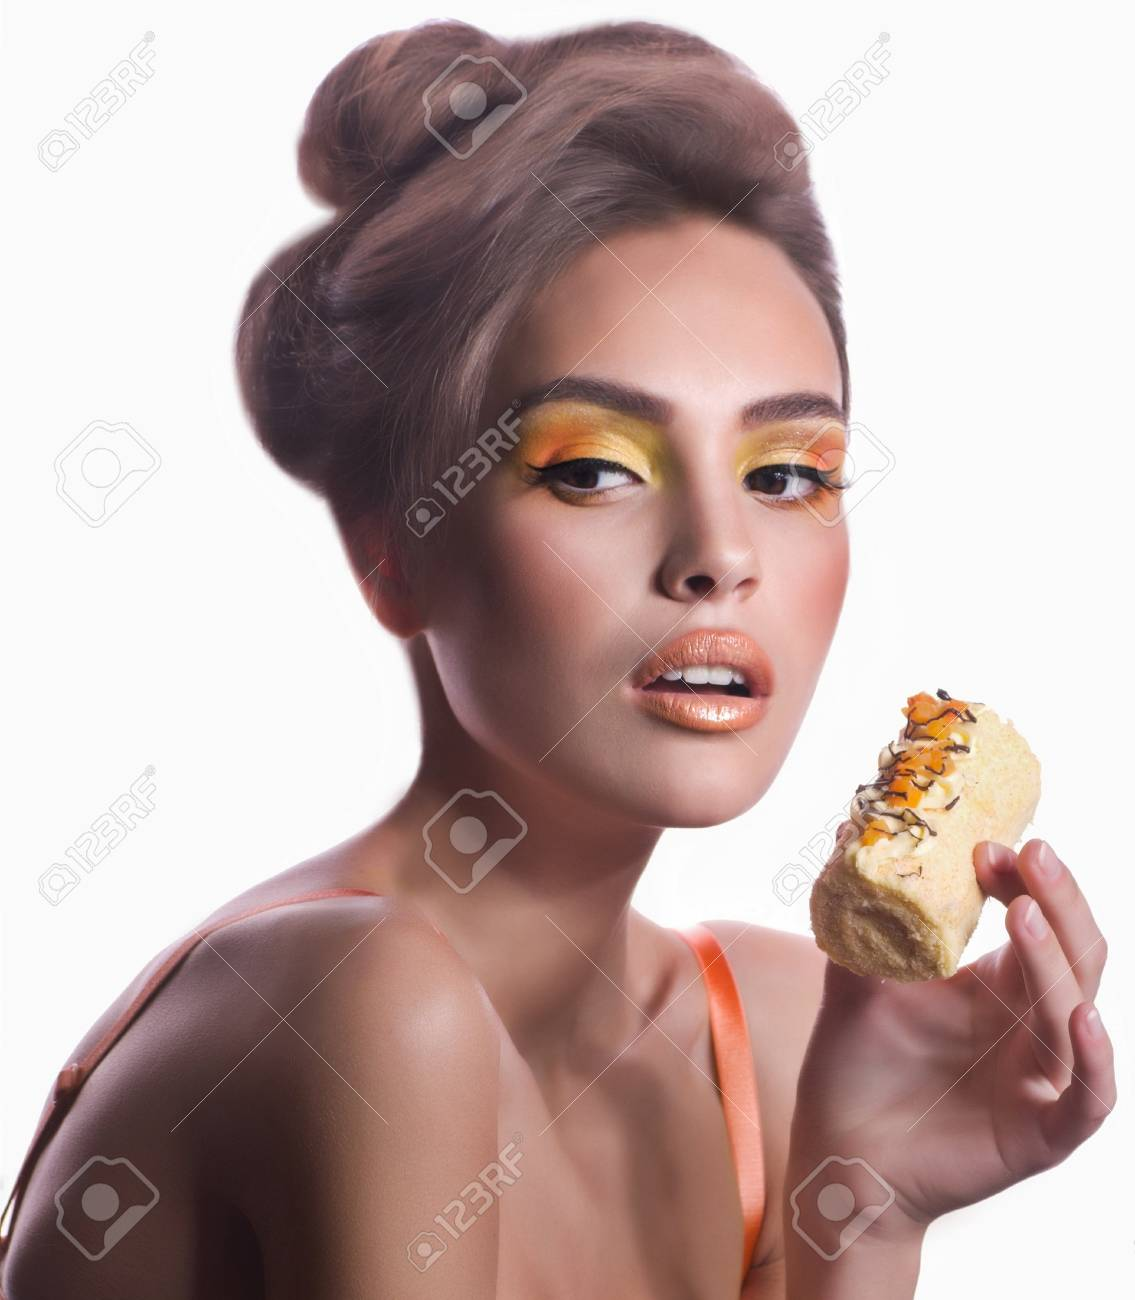 Beautiful fashion girl with delicious orange praline Stock Photo - 21227604